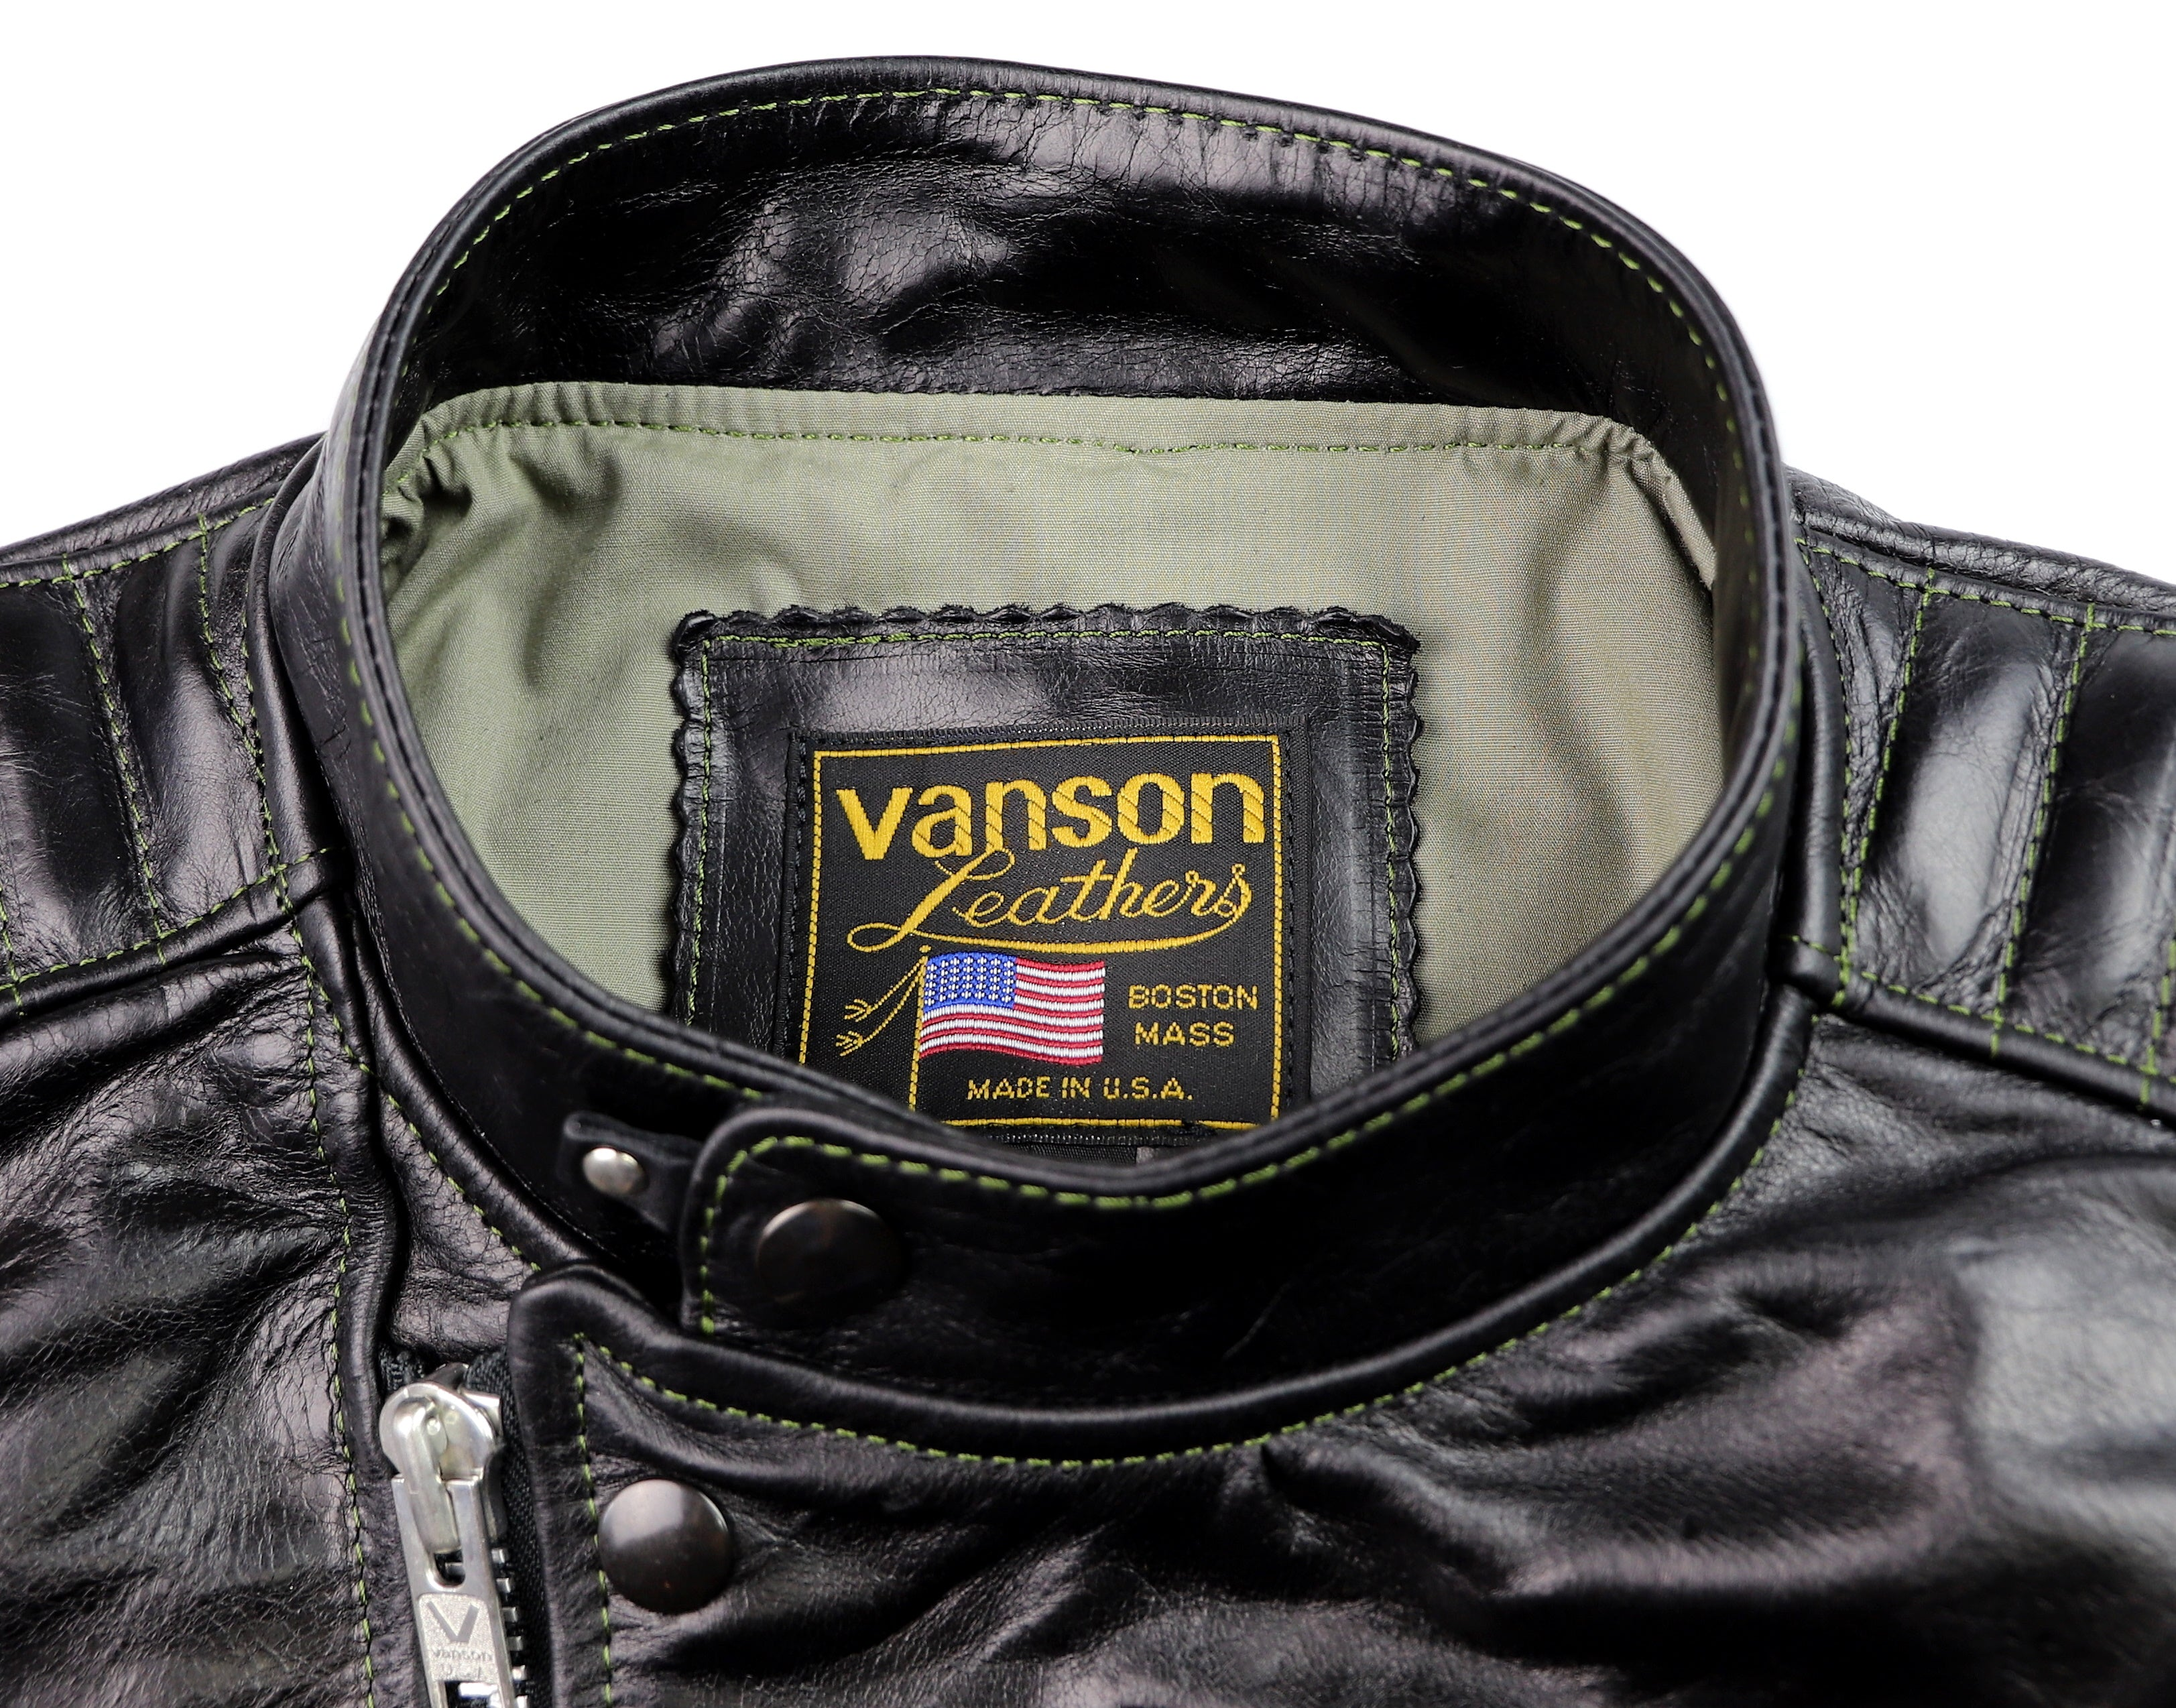 Vanson Portland, Black Bainbridge, size L/XL (44)